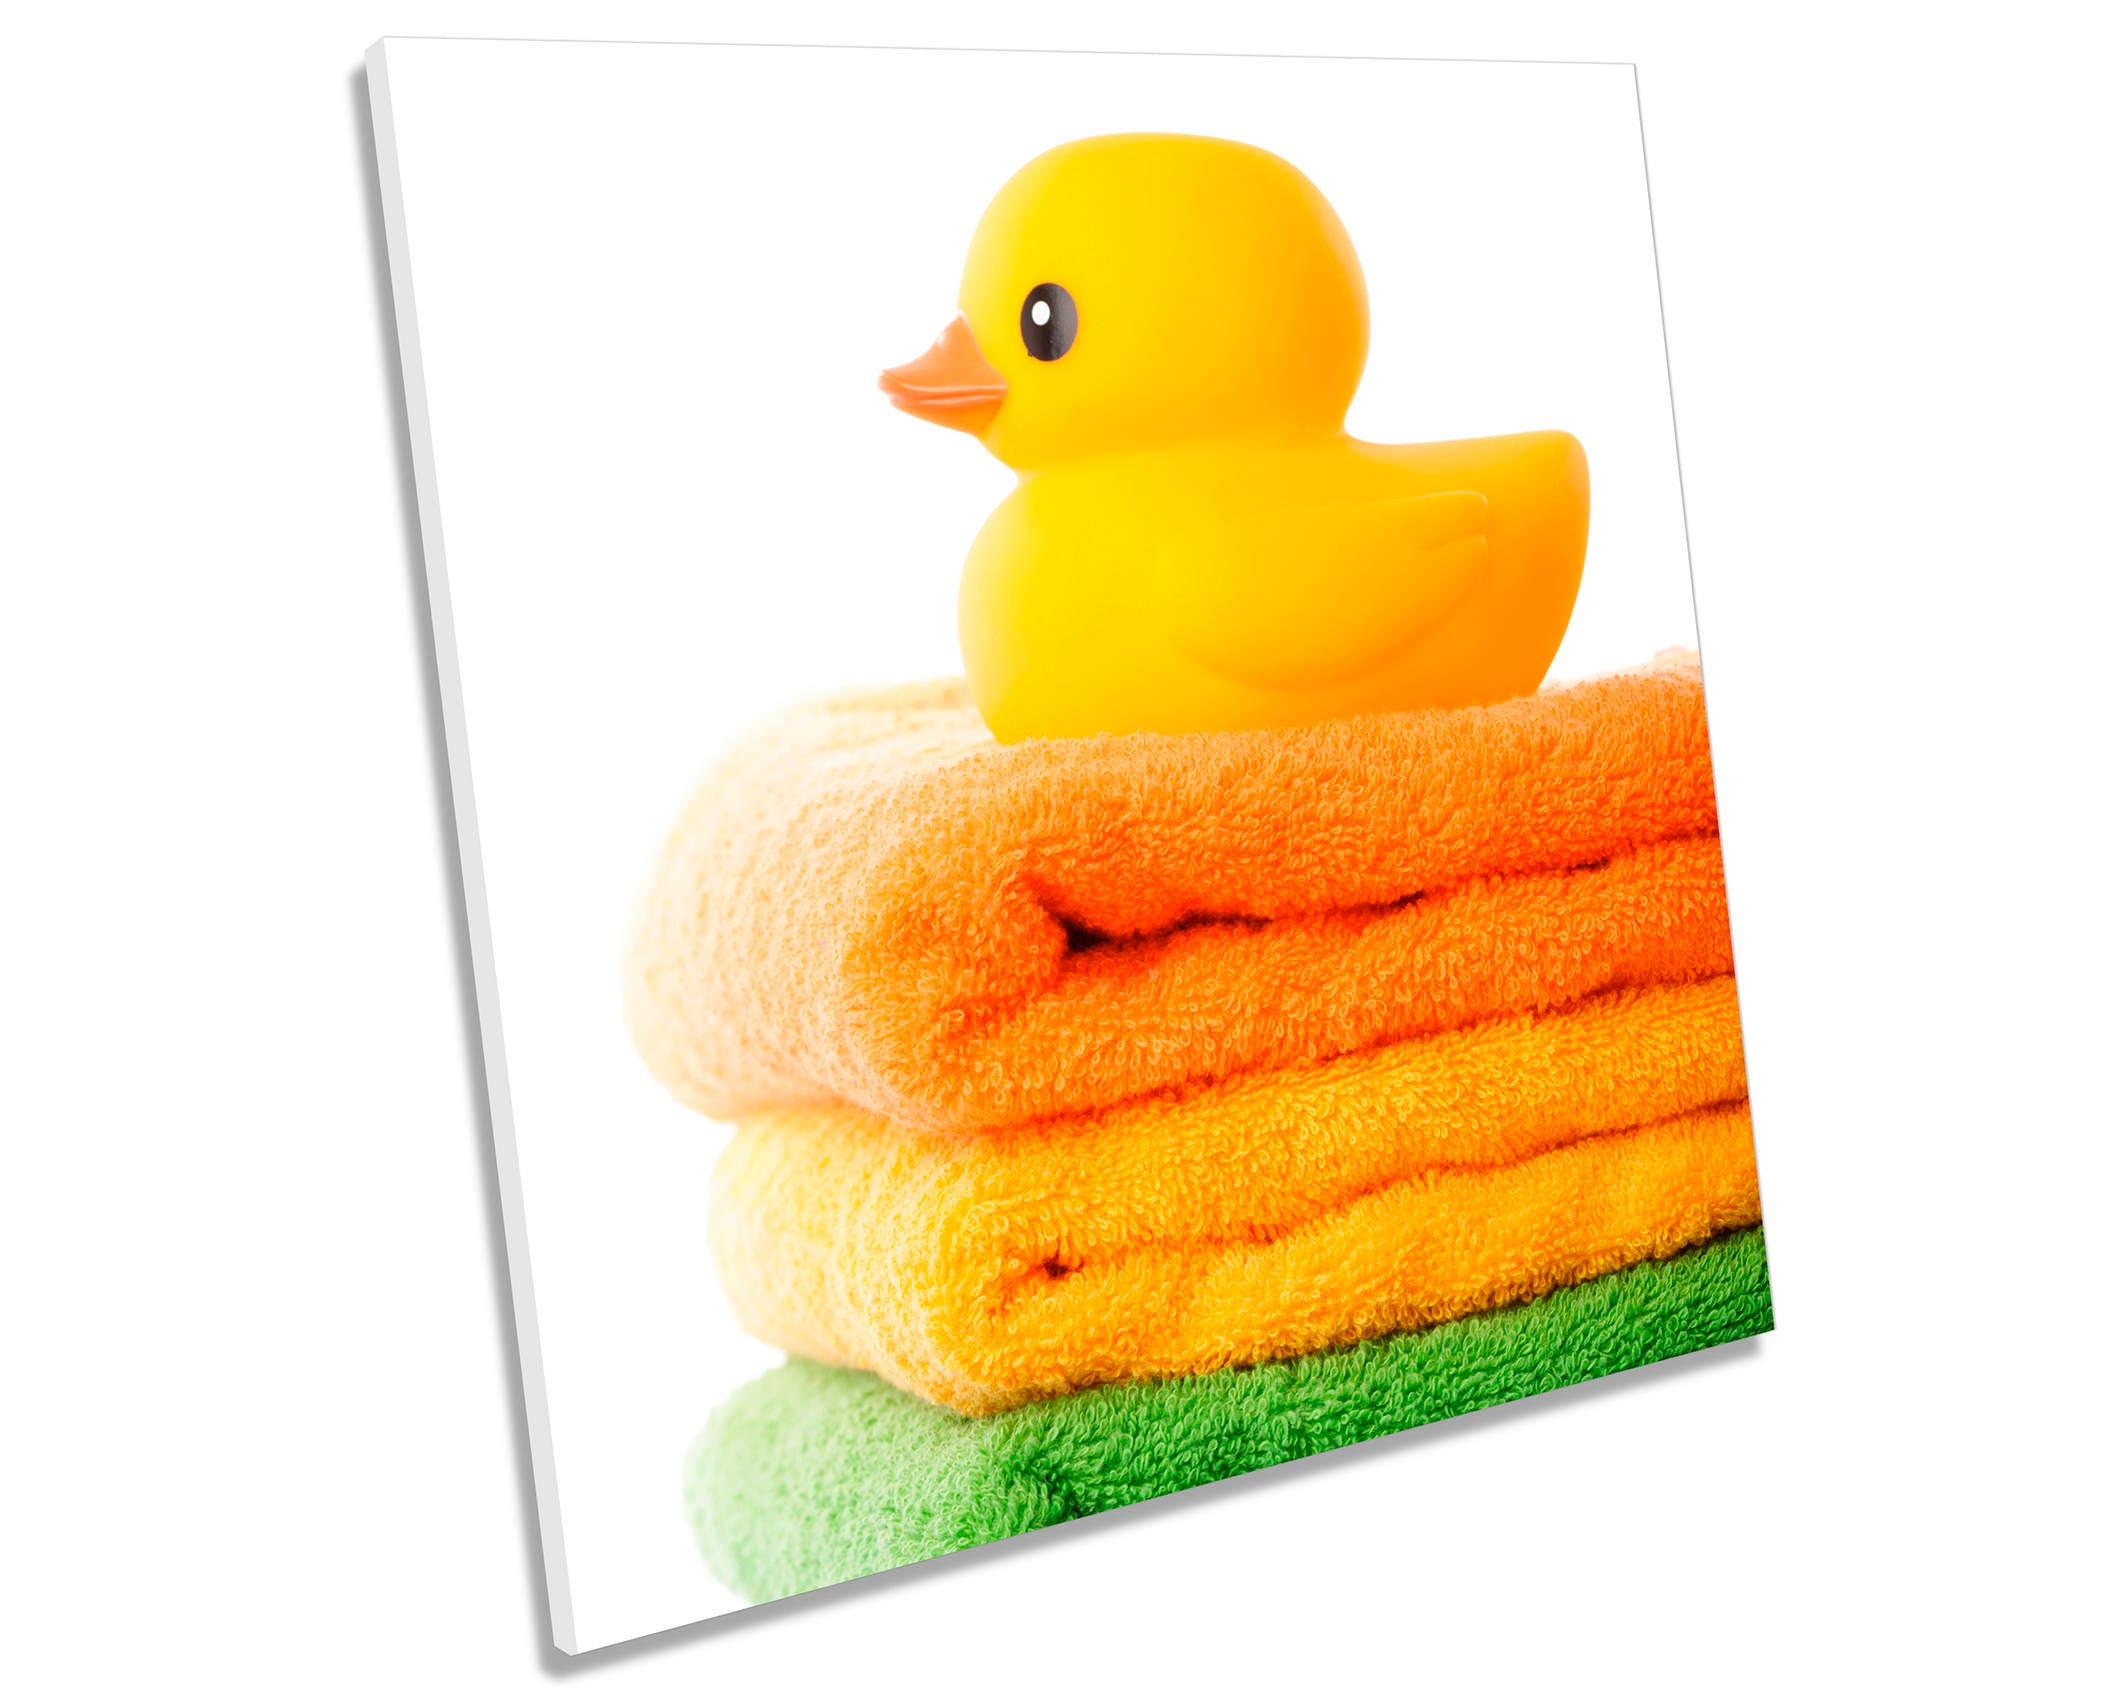 Rubber Duck Towels Bathroom CANVAS WALL ART Square Print | Etsy